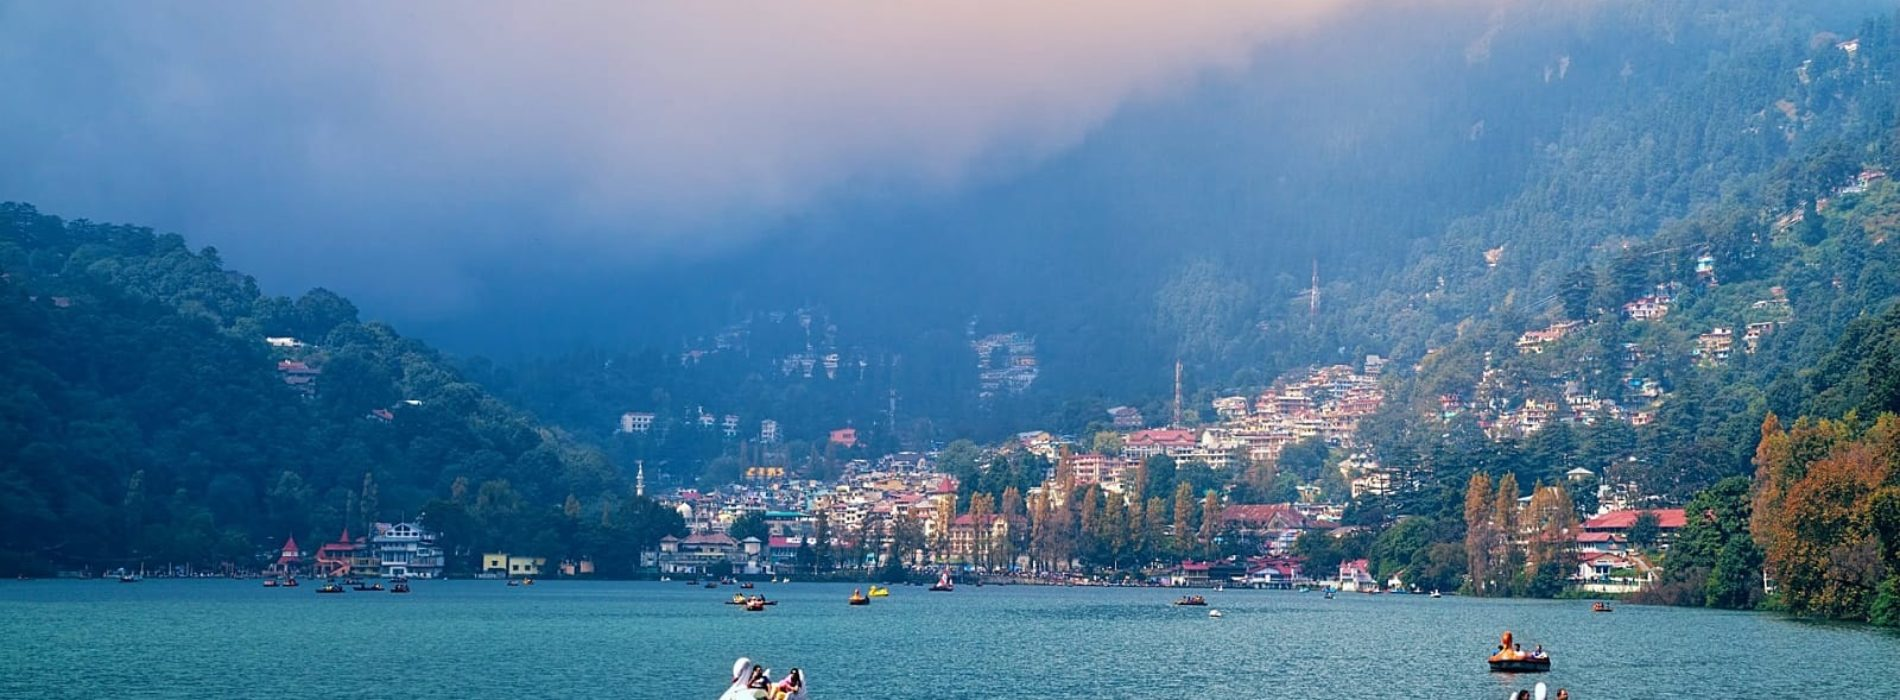 How to reach Nainital from Delhi by train